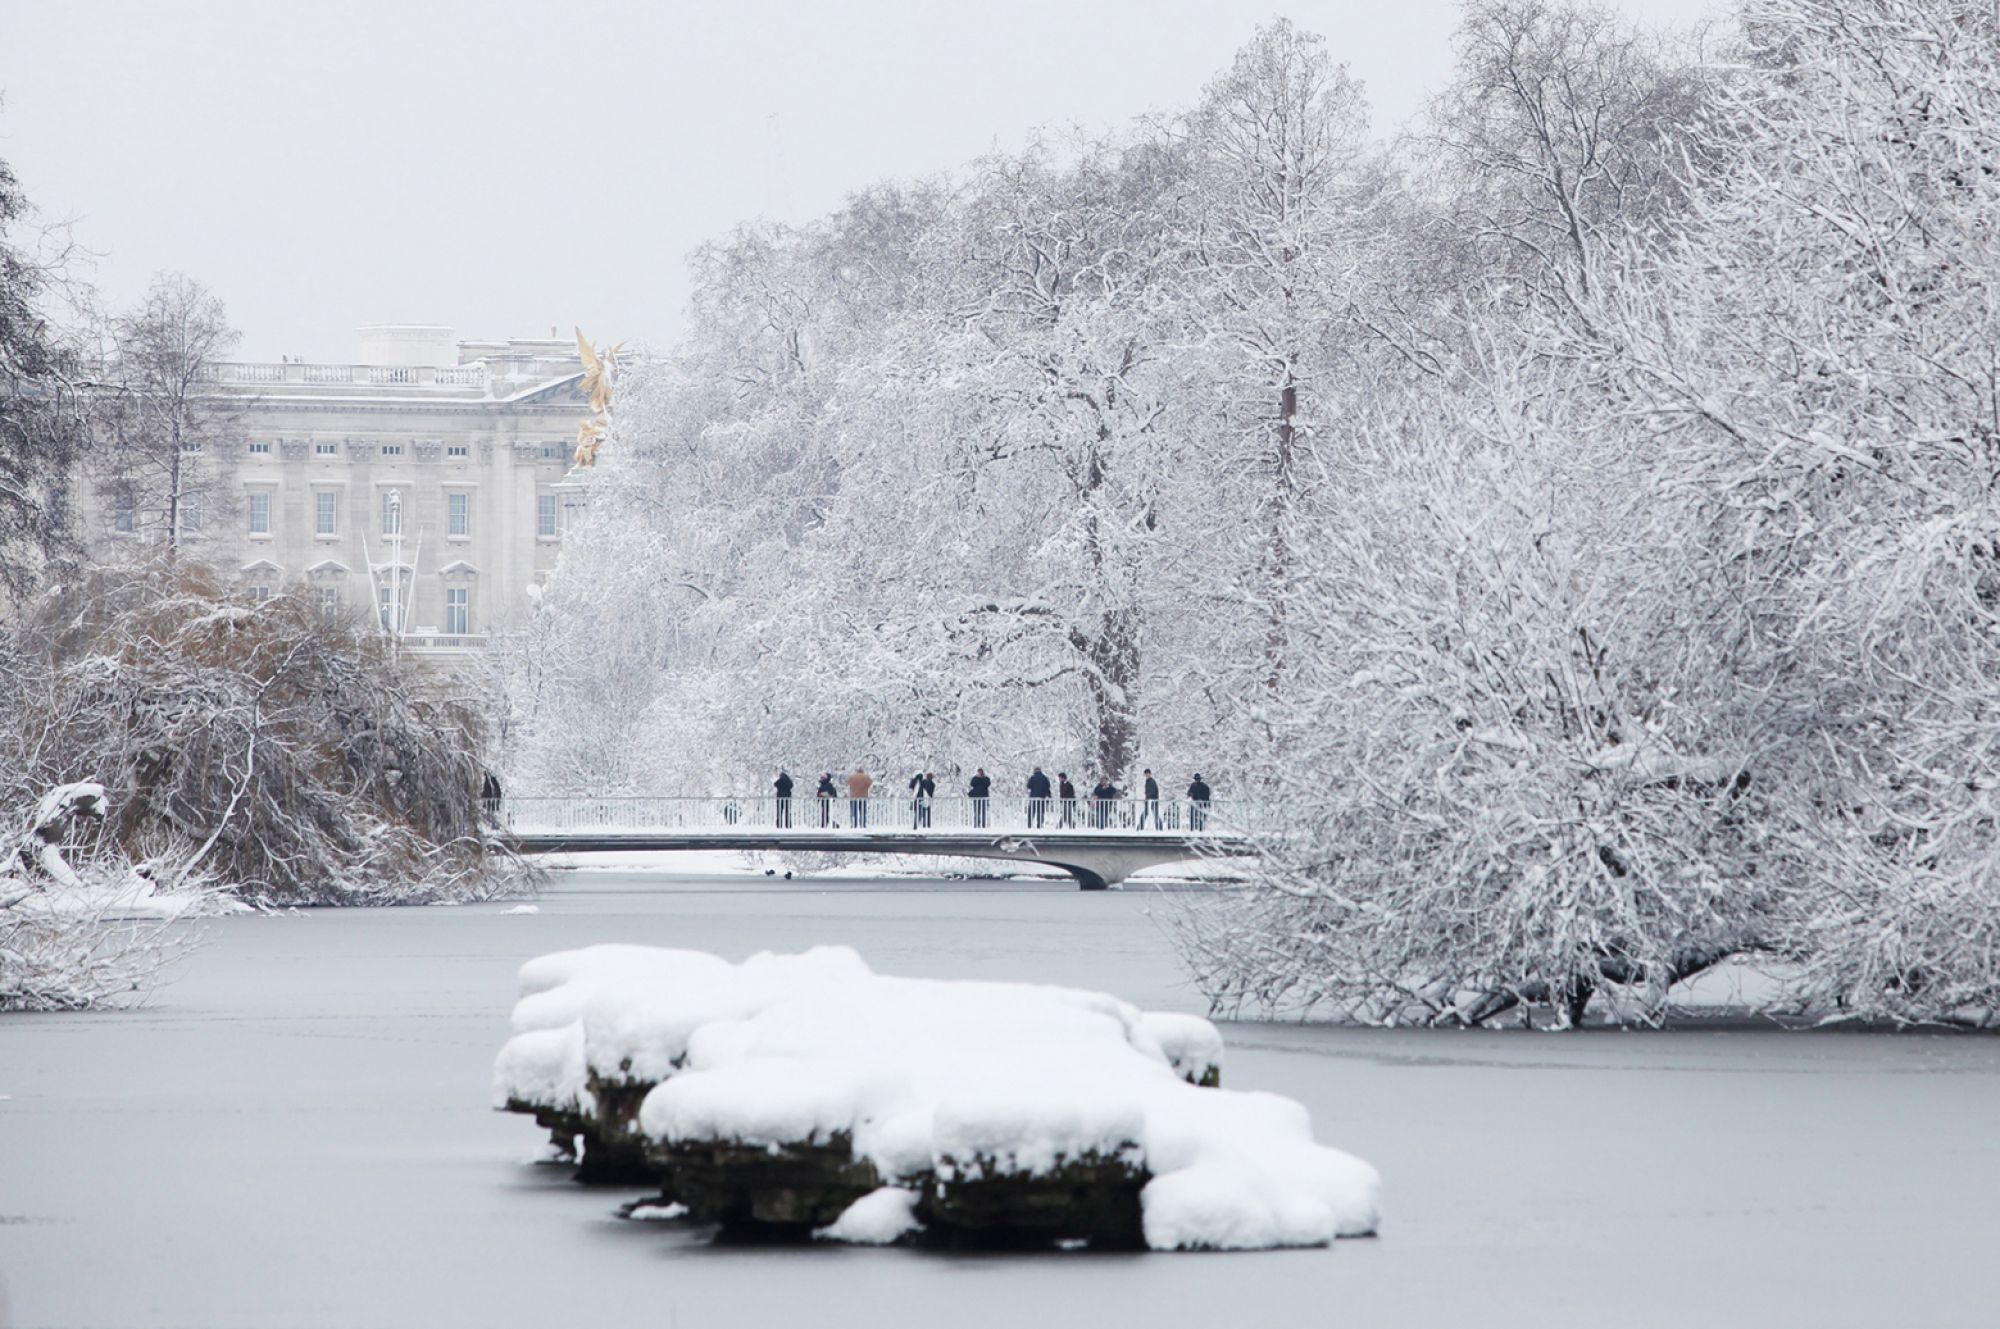 St James's Park lake in the winter snow